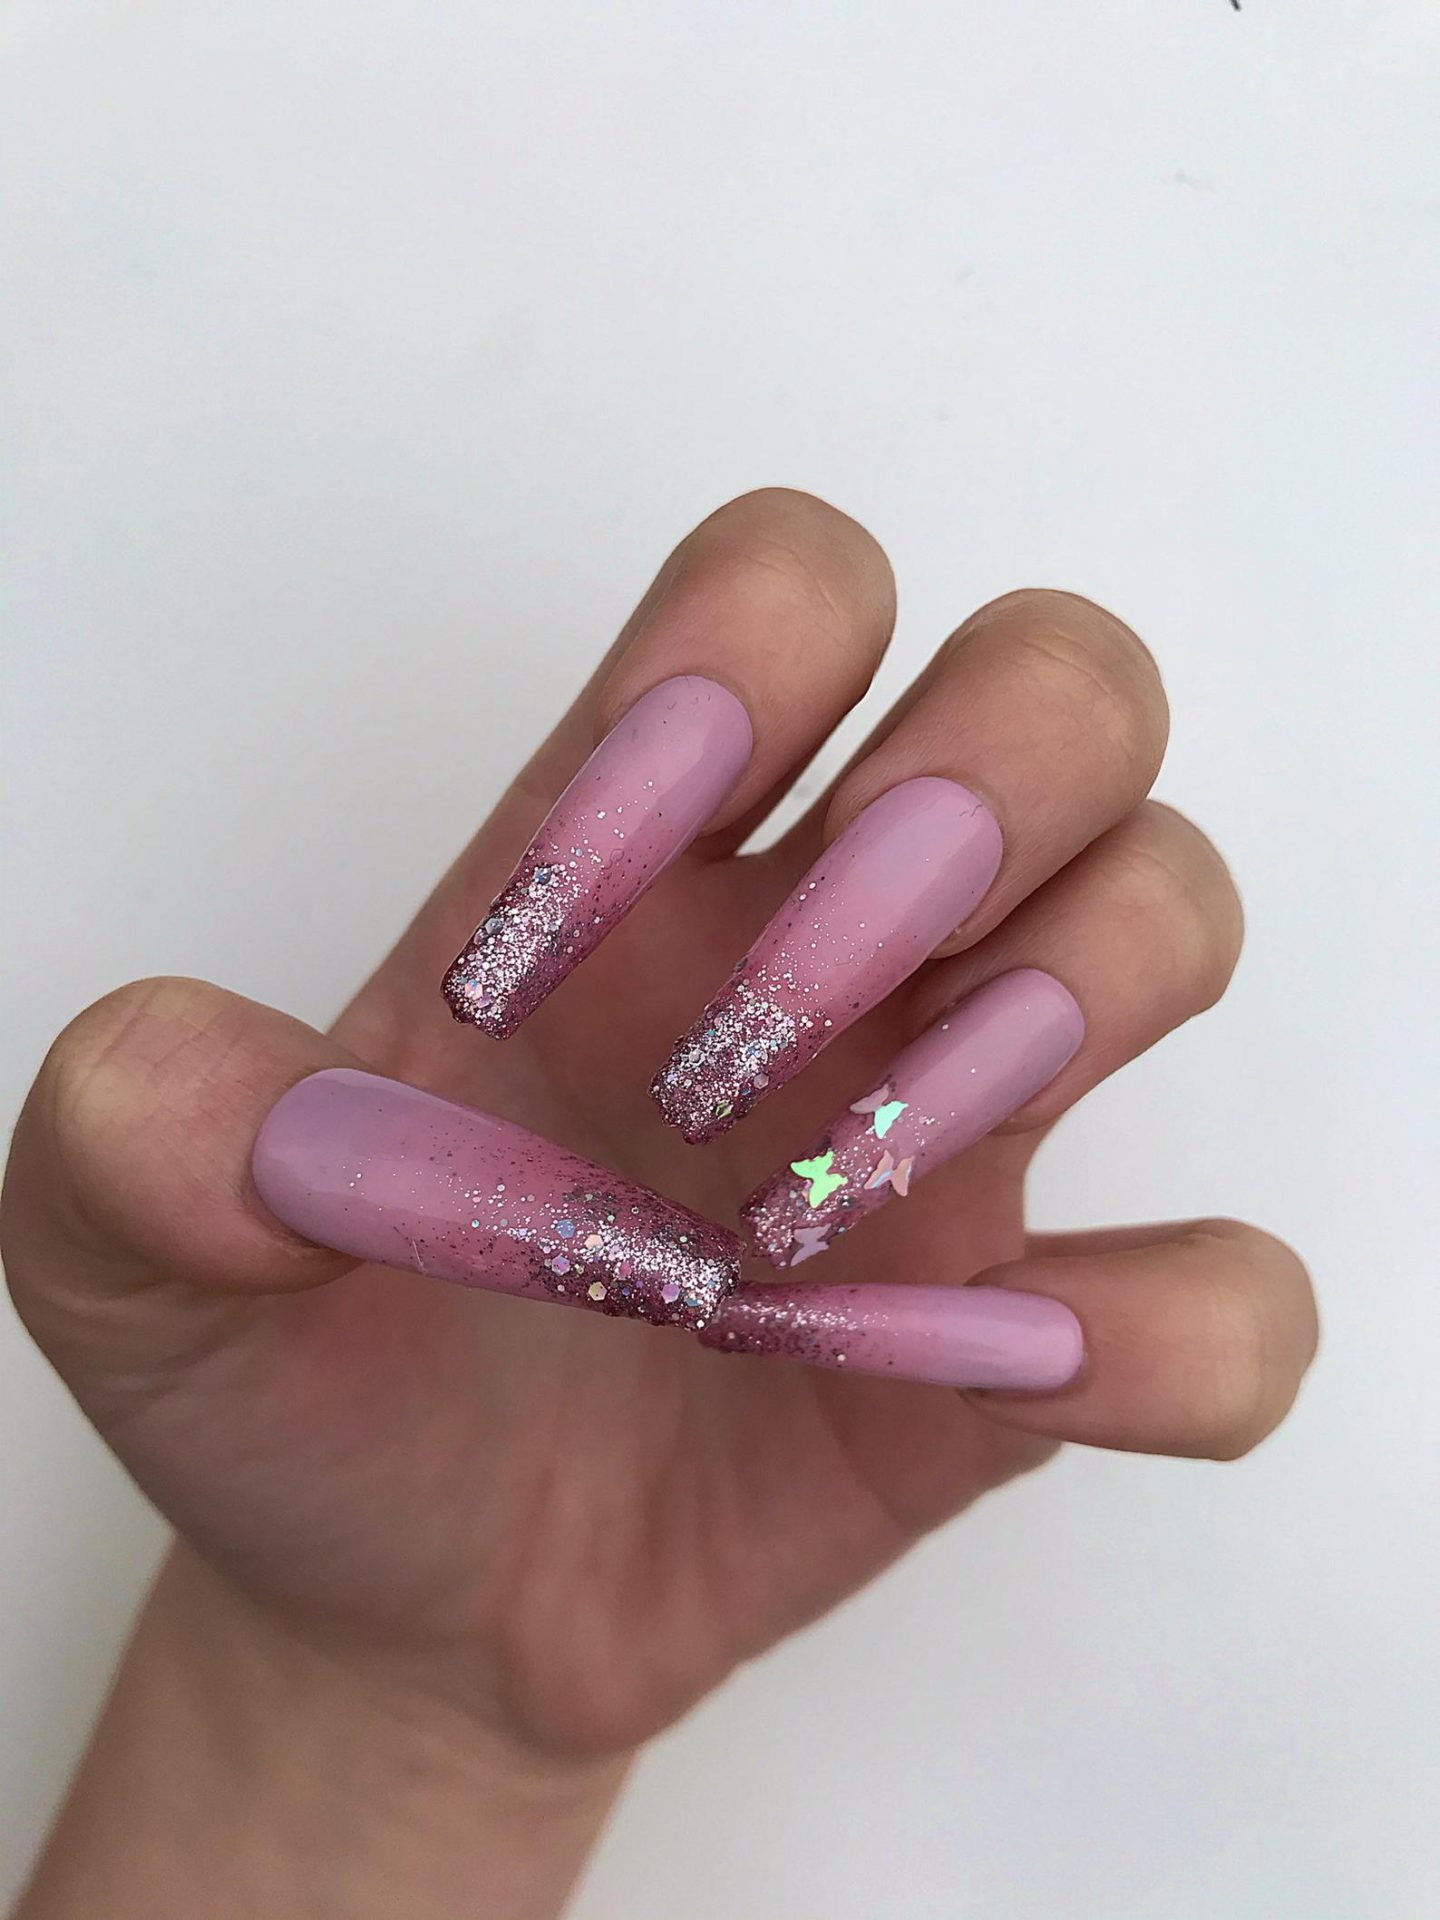 Pink butterfly nails with glitter in acrylic coffin shape